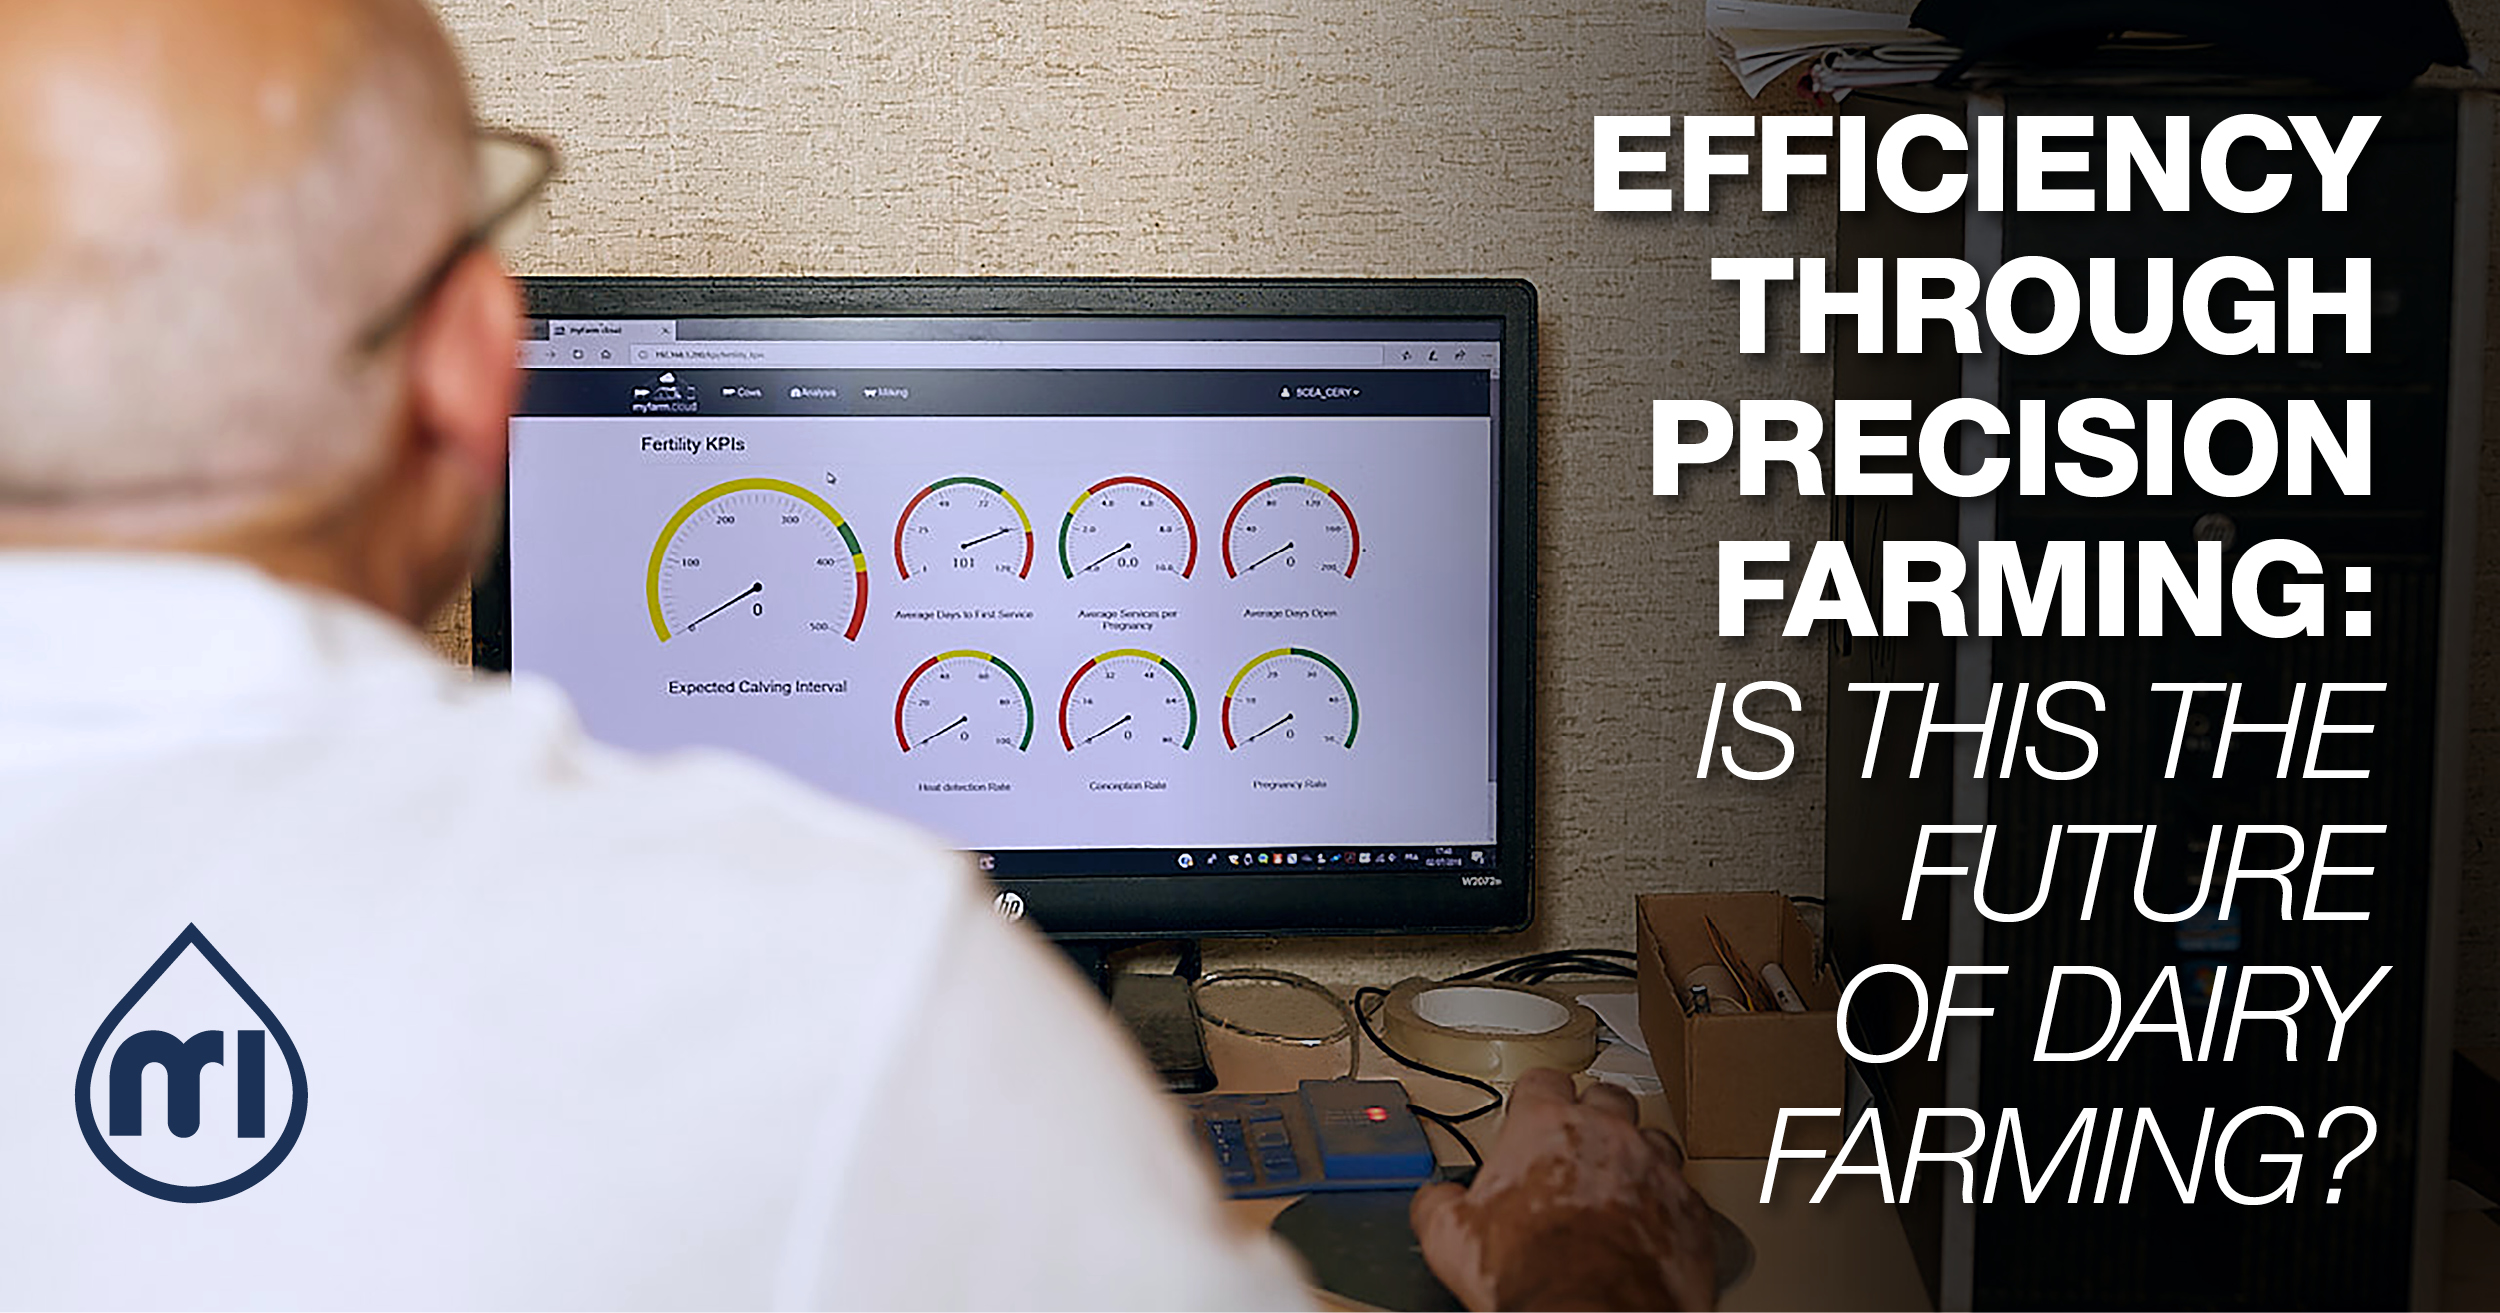 Efficiency through Precision Farming: is this the future of dairy farming?